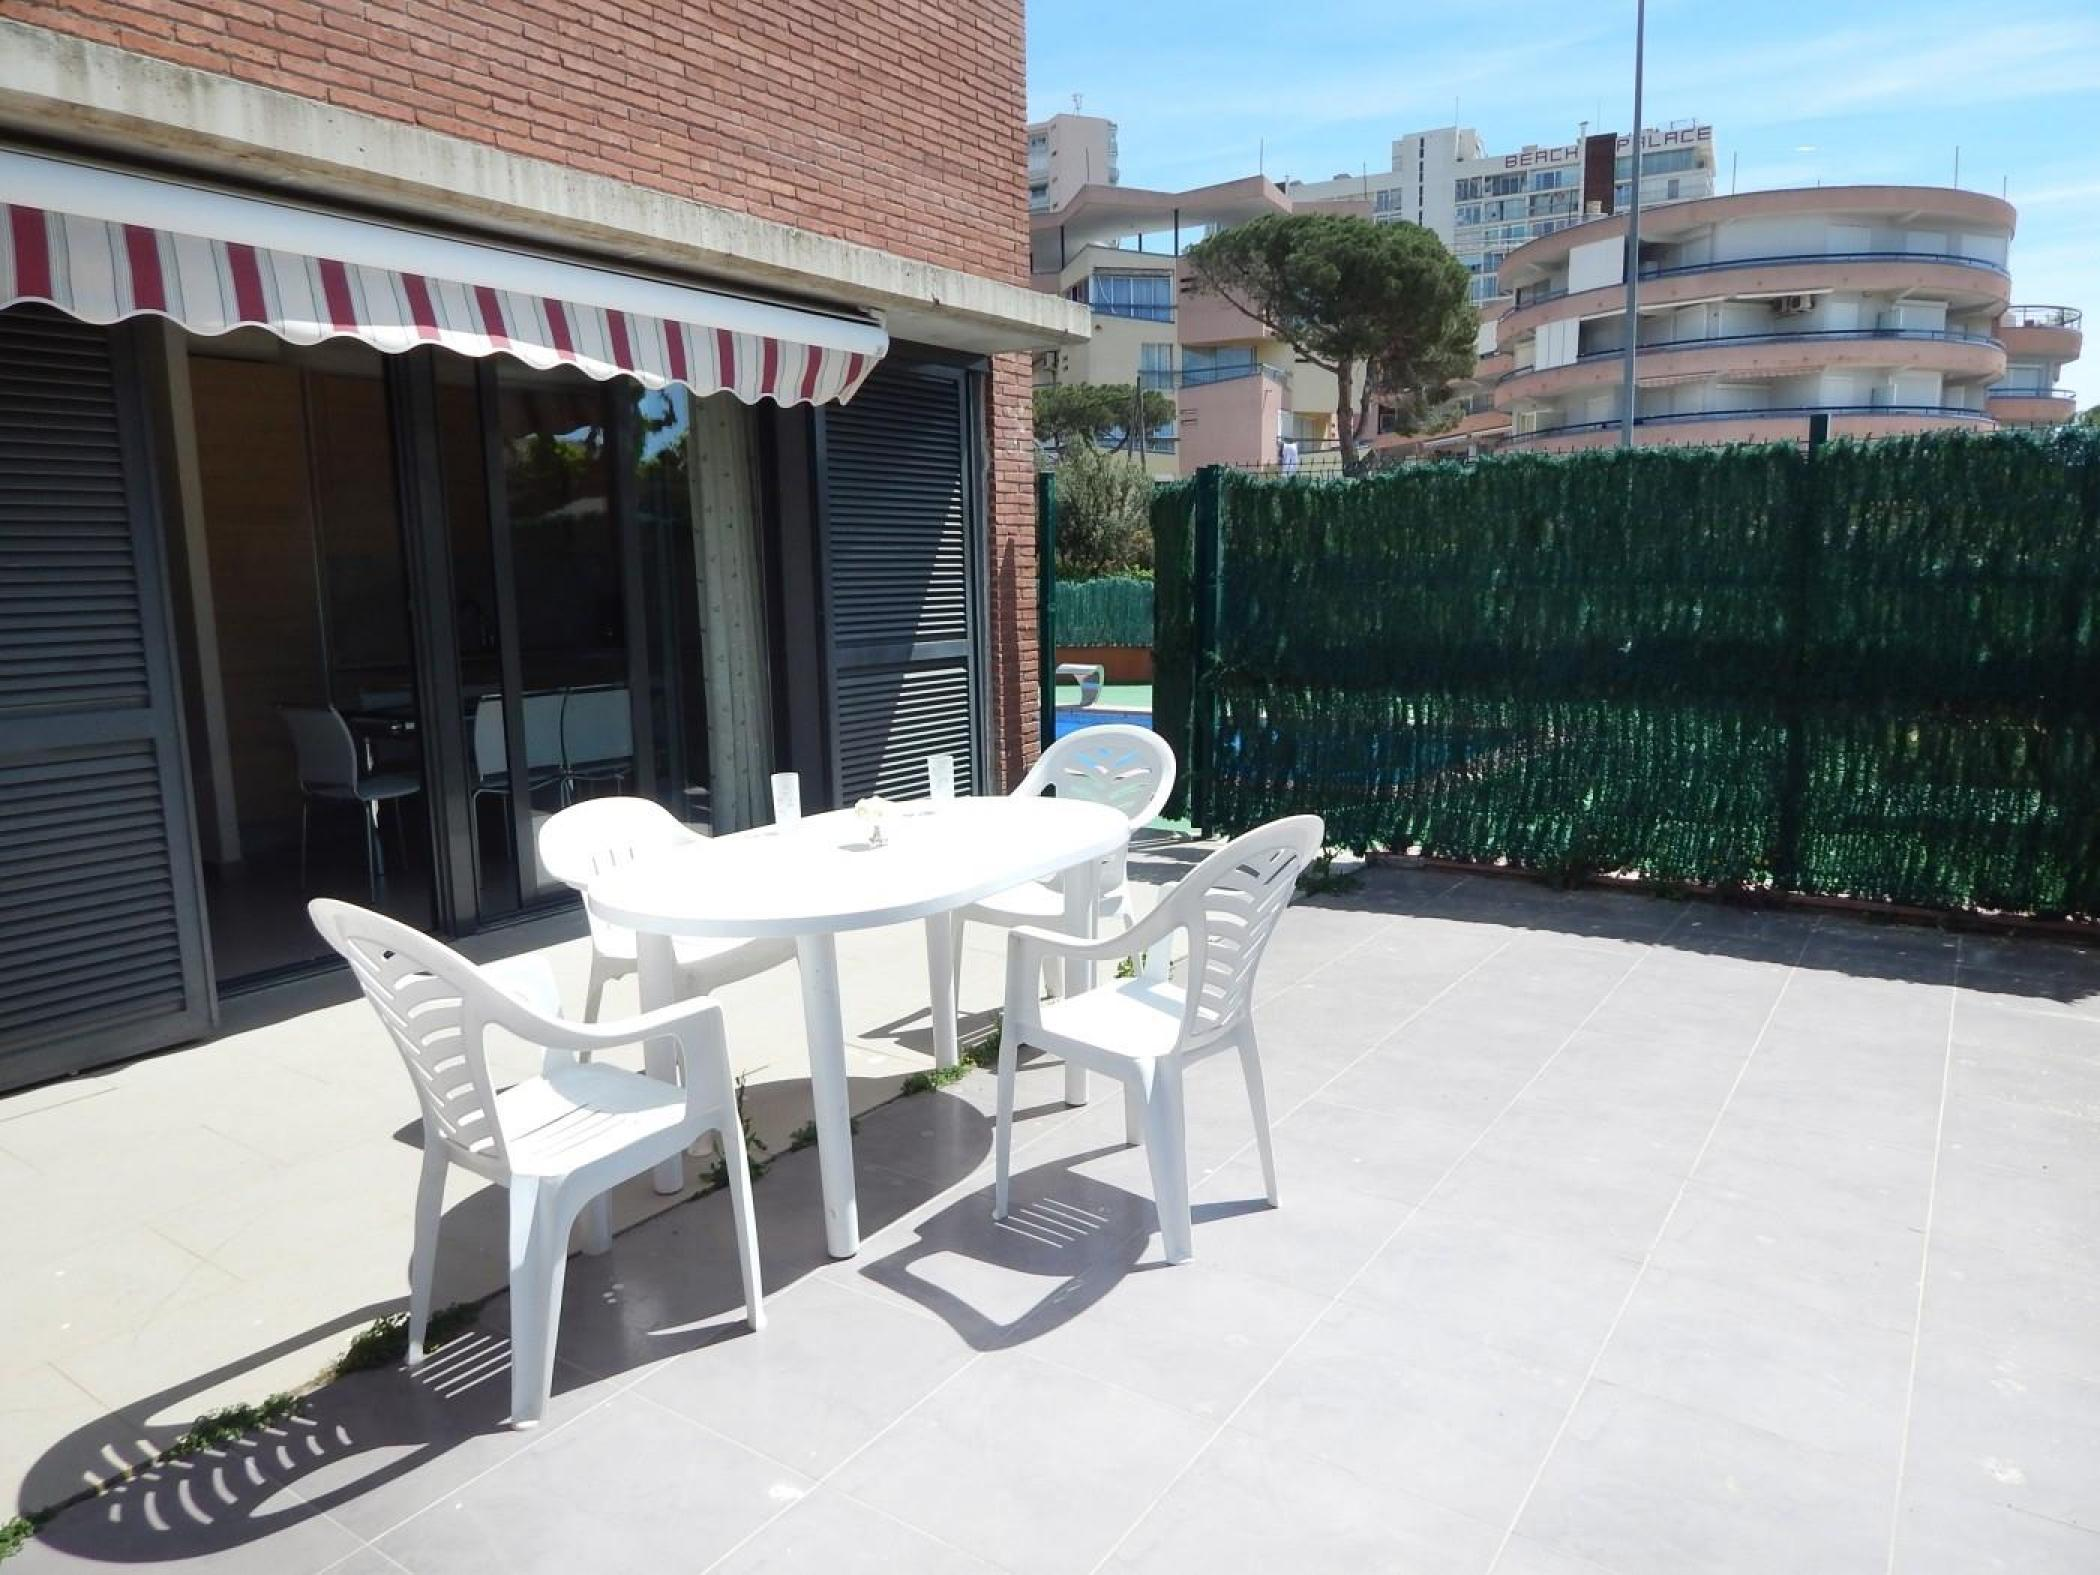 аренда квартира с басcейн для Platja d'Aro - Ground floor in front of the sea Ridaura BX4 - 17